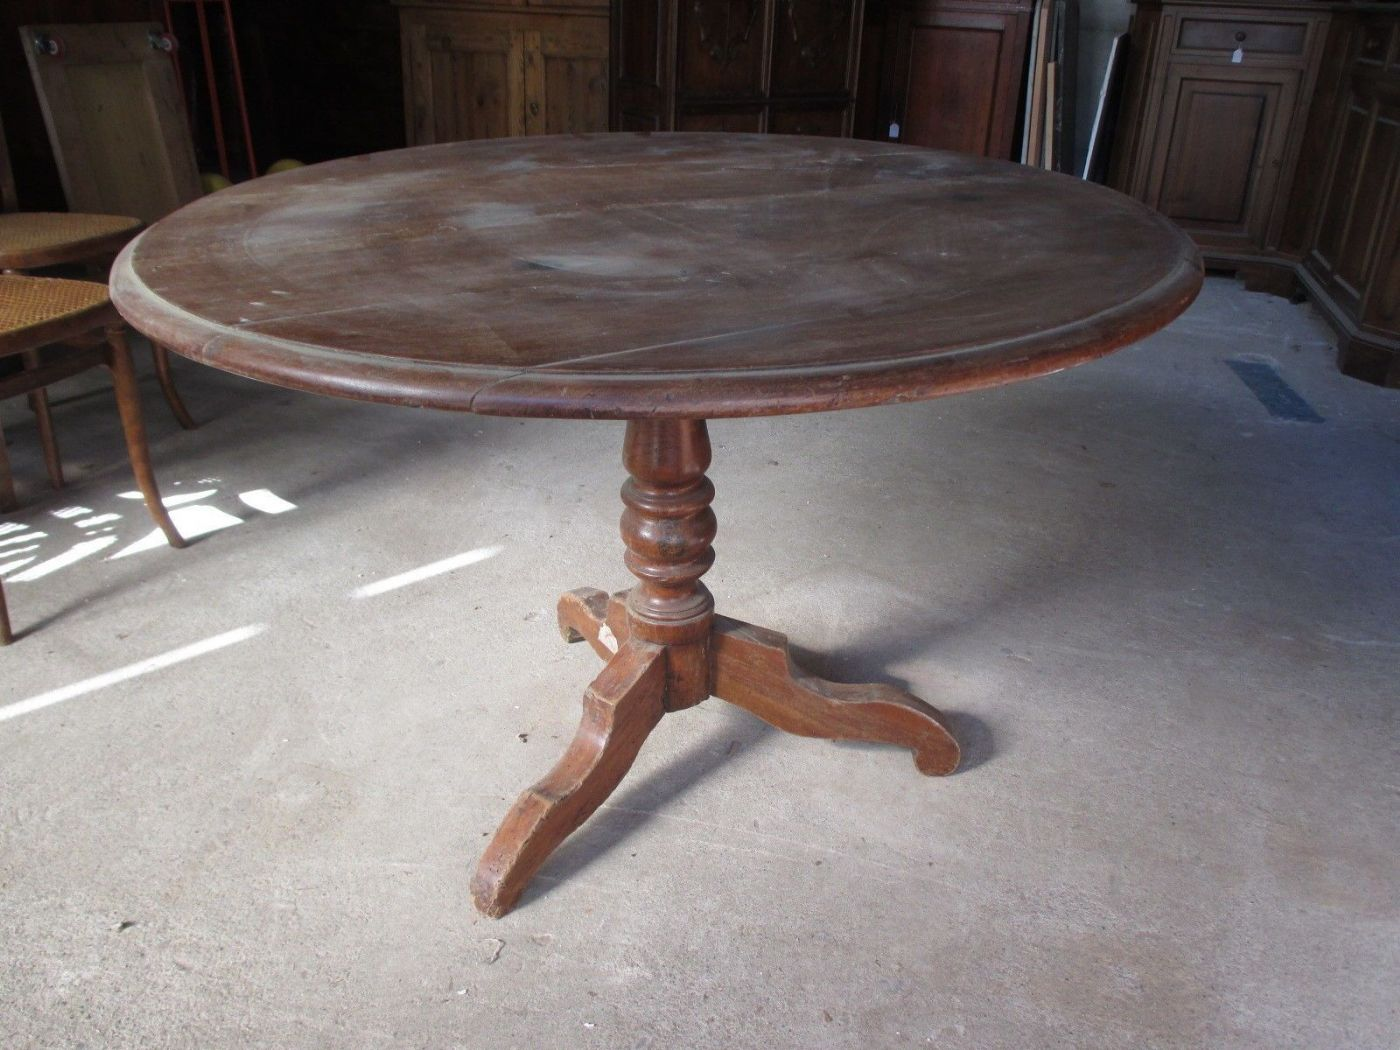 Tavolo Con Gamba Centrale fixed round table in walnut with central leg - half of the